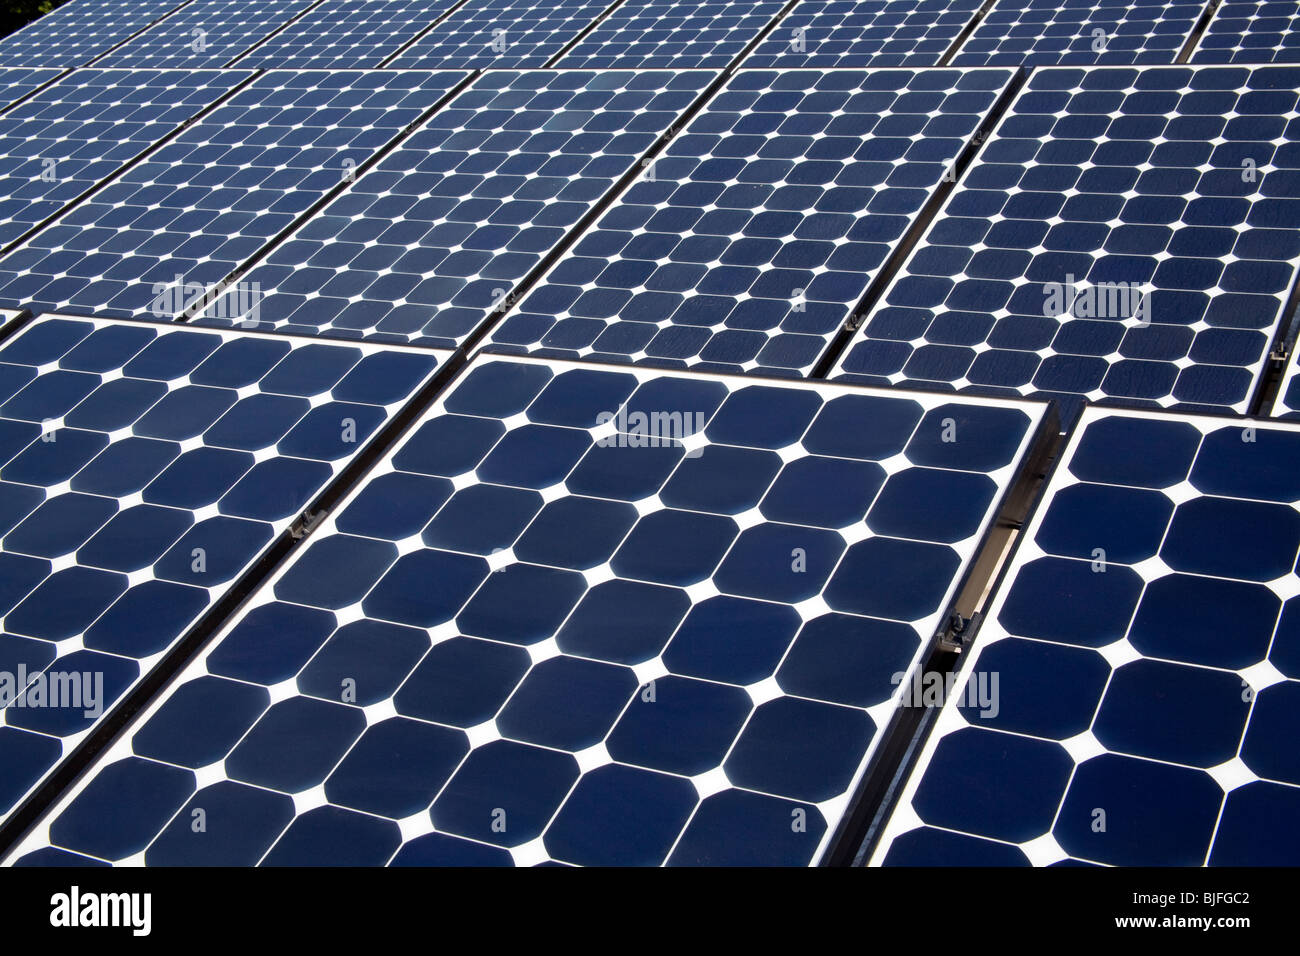 Solar Array on roof of Store, North Hollywood, Los Angeles, California, USA - Stock Image